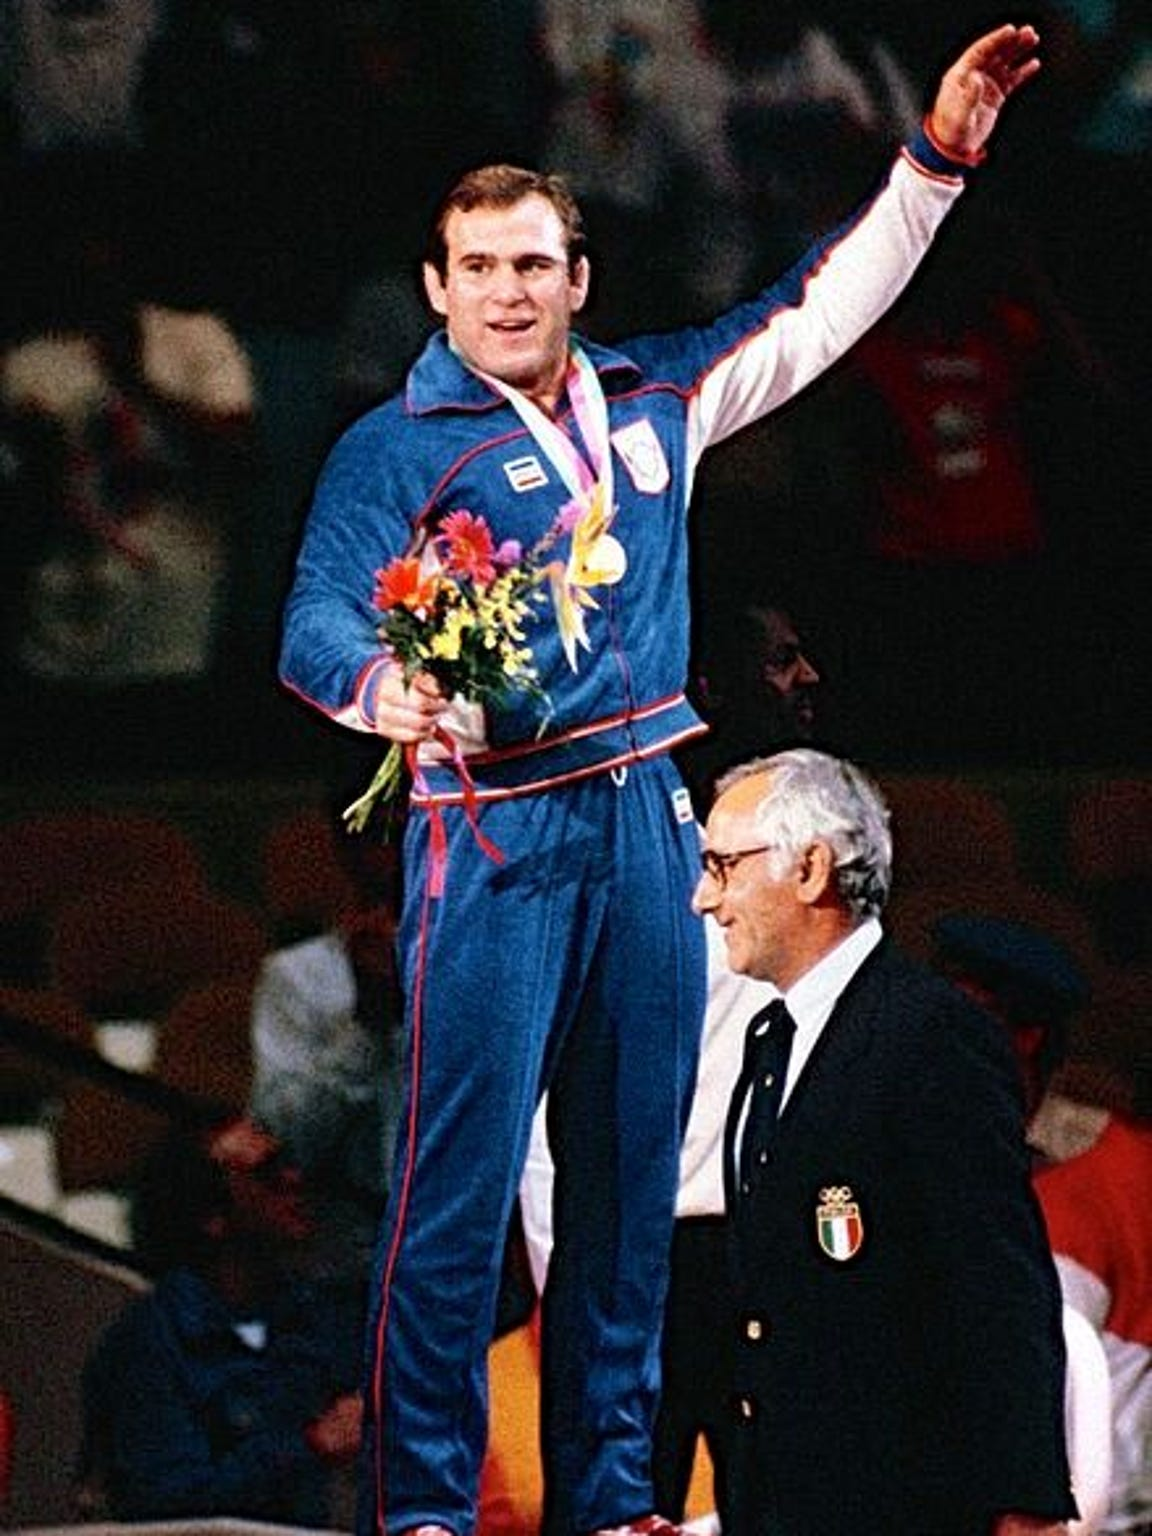 Wrestler Ed Banach accepts his gold medal during the